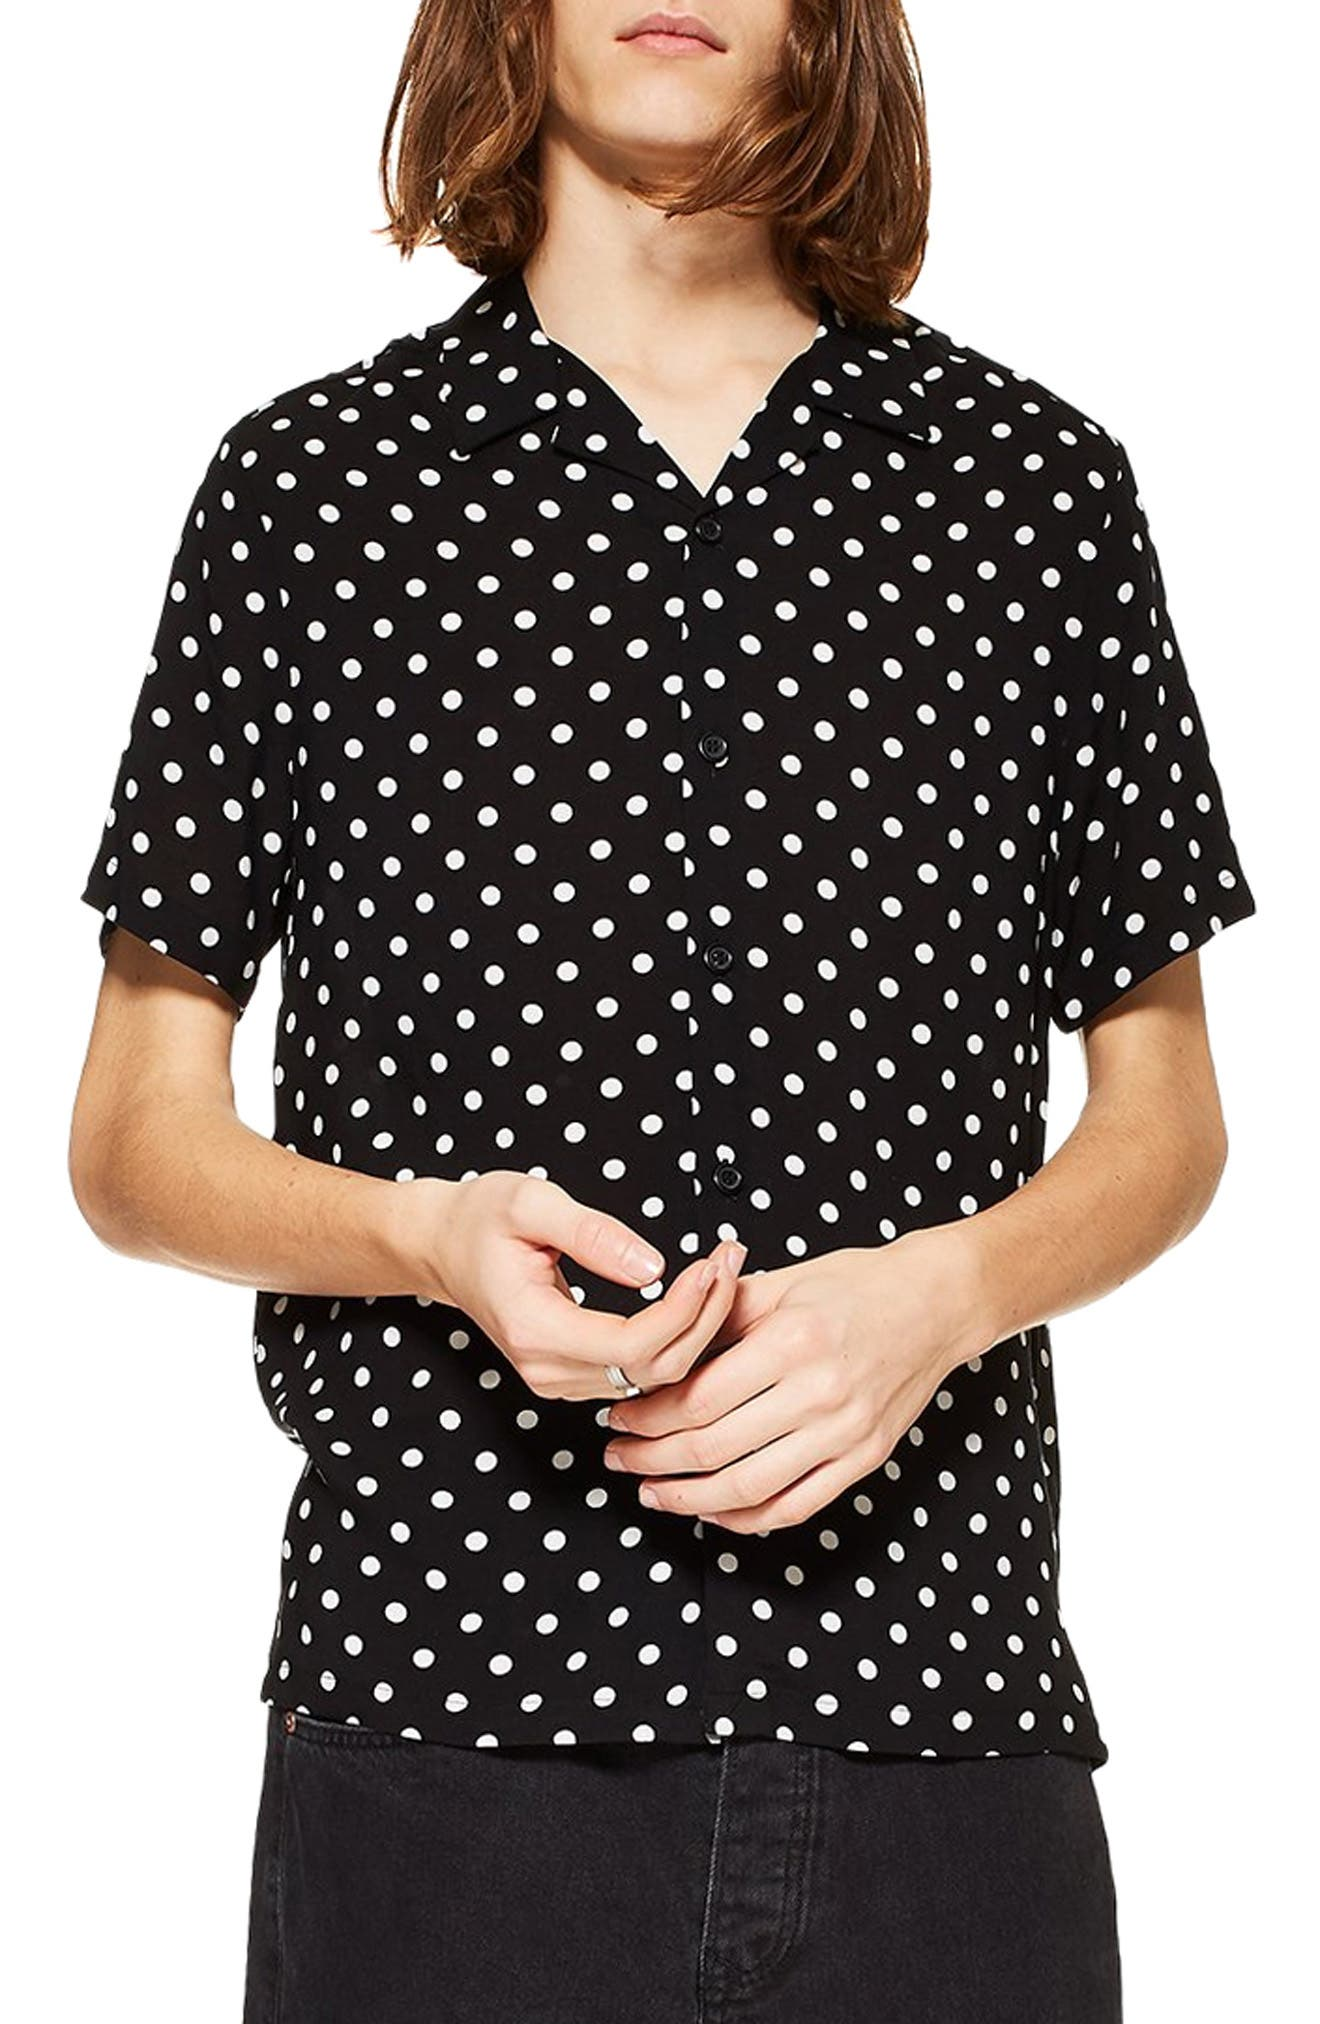 1950s Men's Clothing Mens Topman Polka Dot Camp Shirt $65.00 AT vintagedancer.com